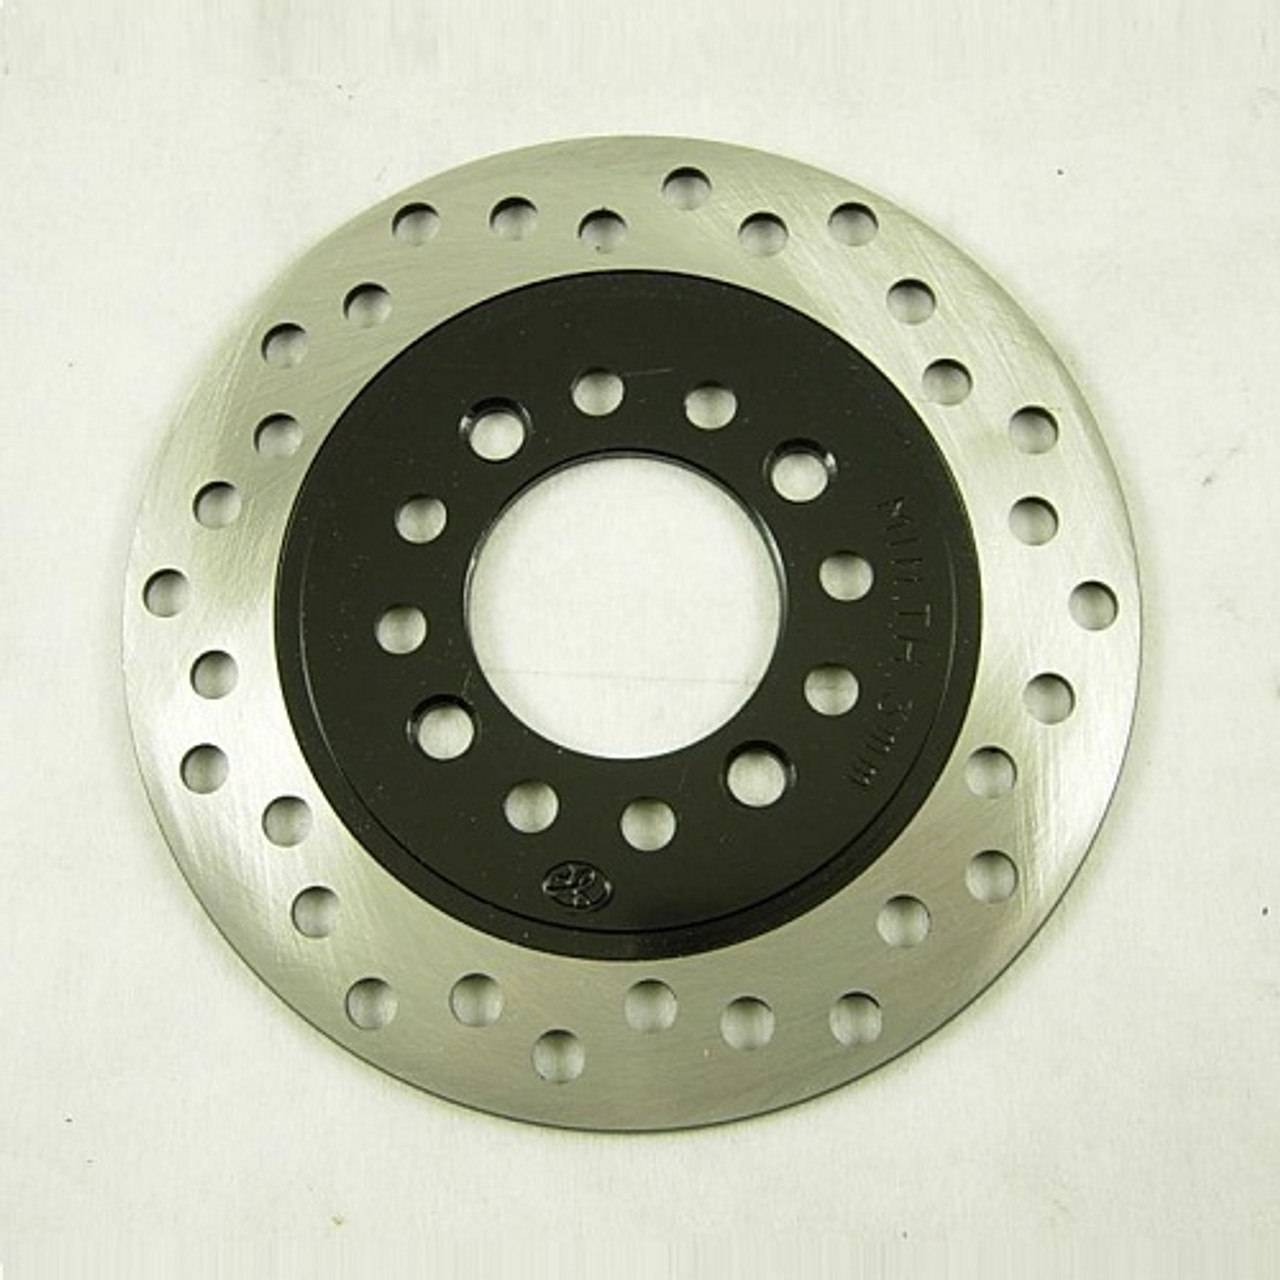 Disk Brake Rotor; 160×3.5 4 Bolts for ATA 110 B/B1 600723